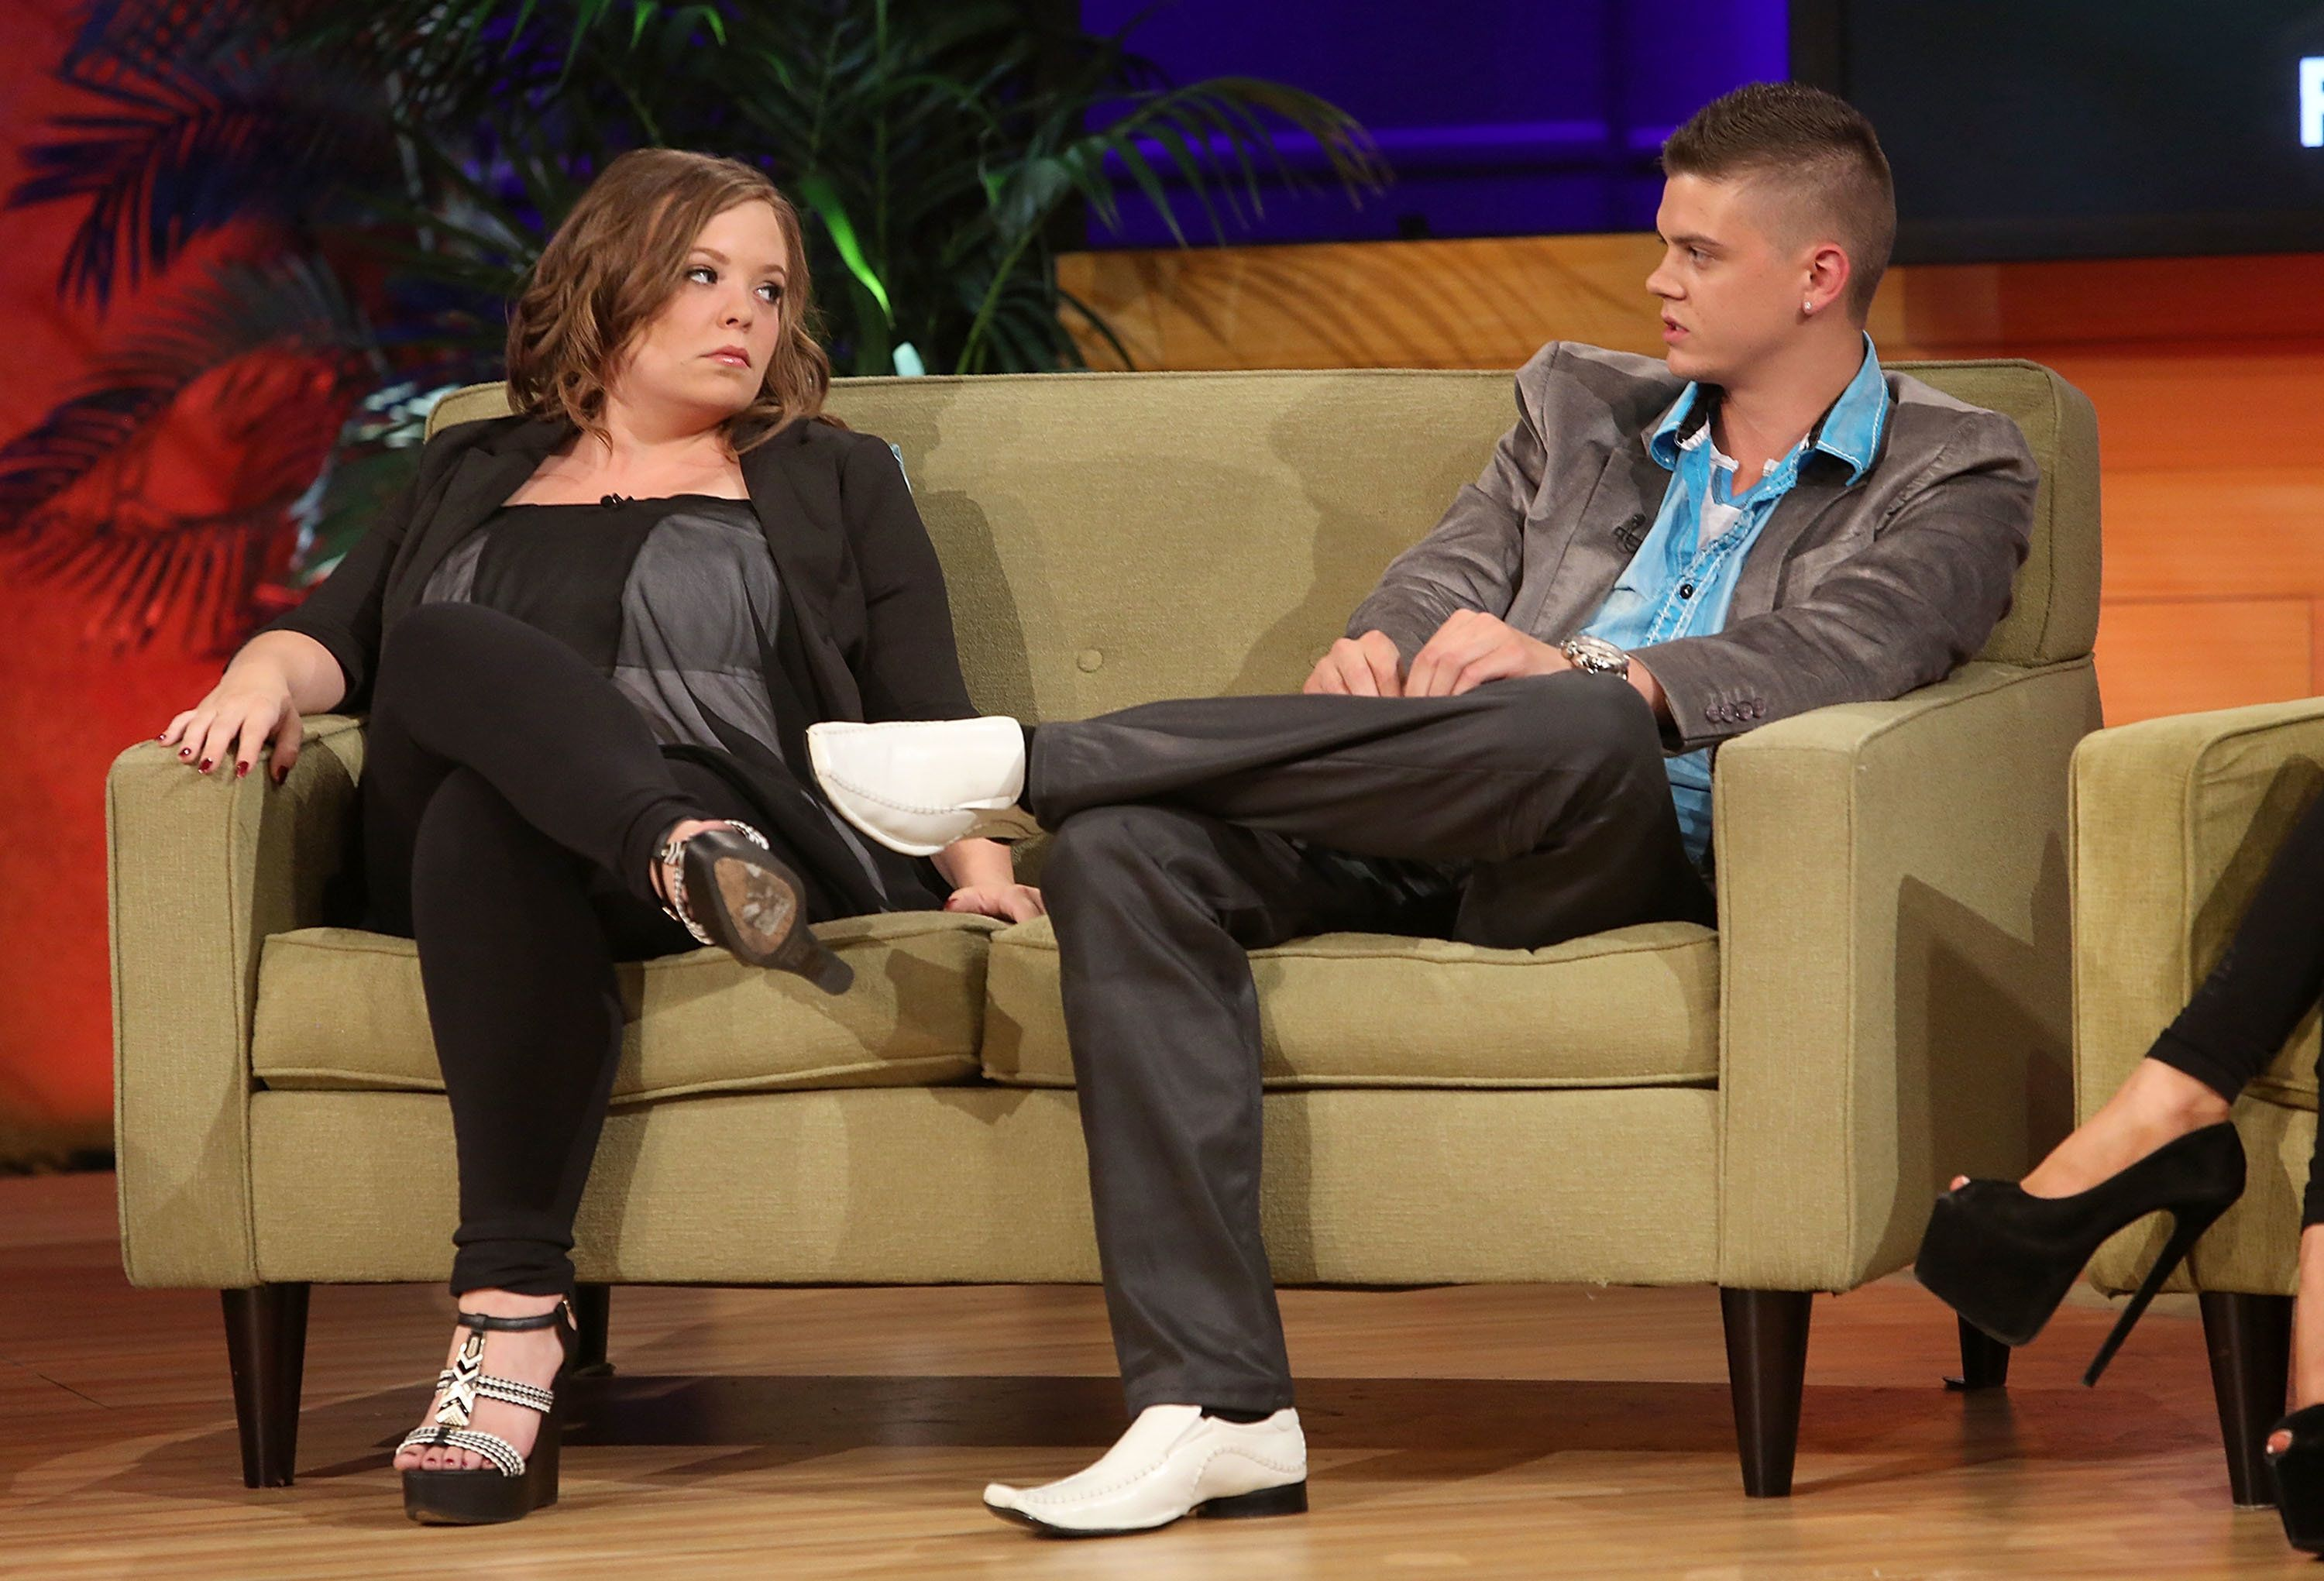 Catelynn and Tyler discuss the difficulties of teen pregnancy